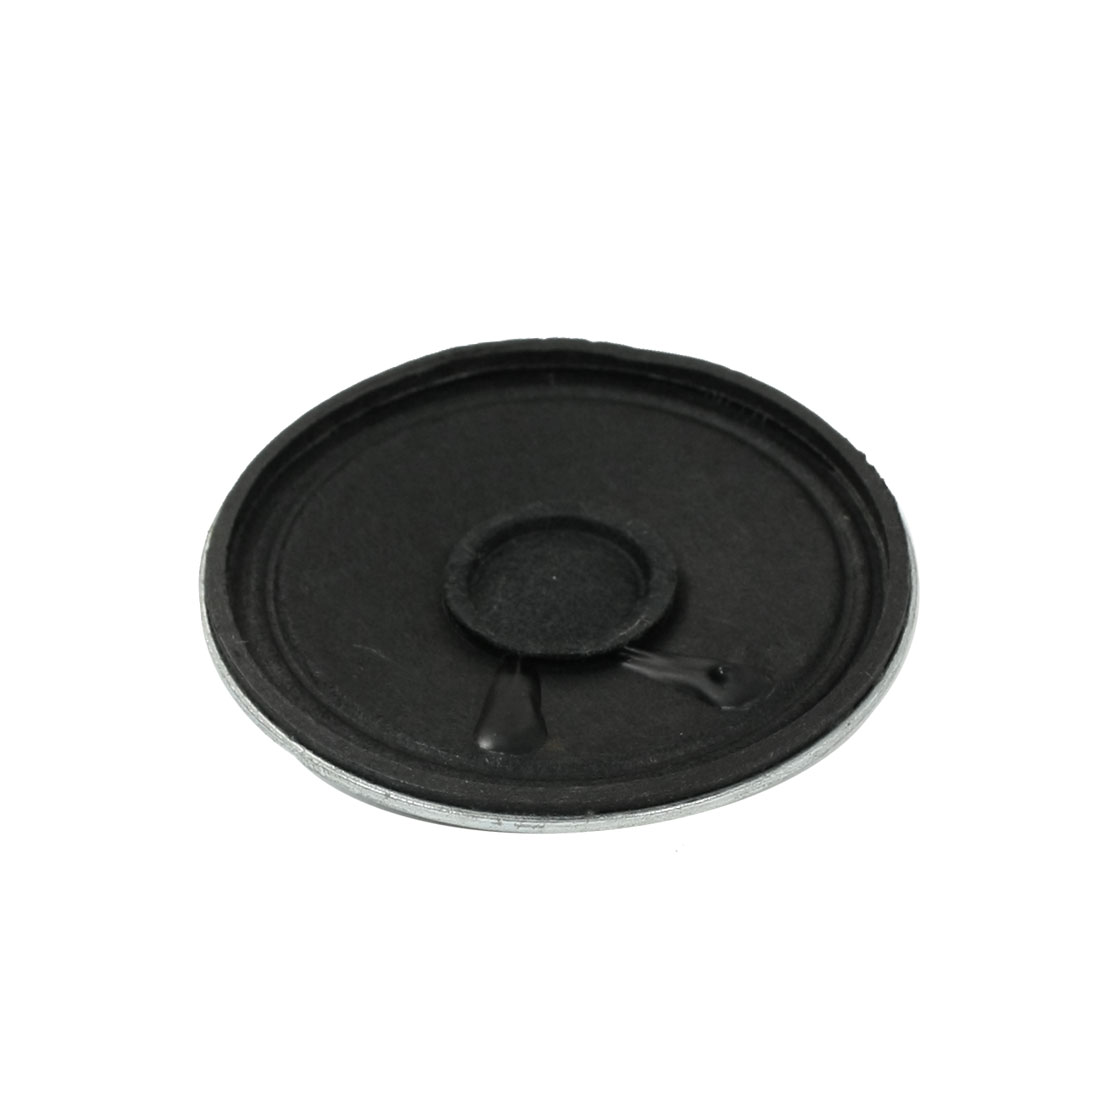 50mm Diameter Silver Tone Black Round Internal Magnet Speaker 8 Ohm 1W